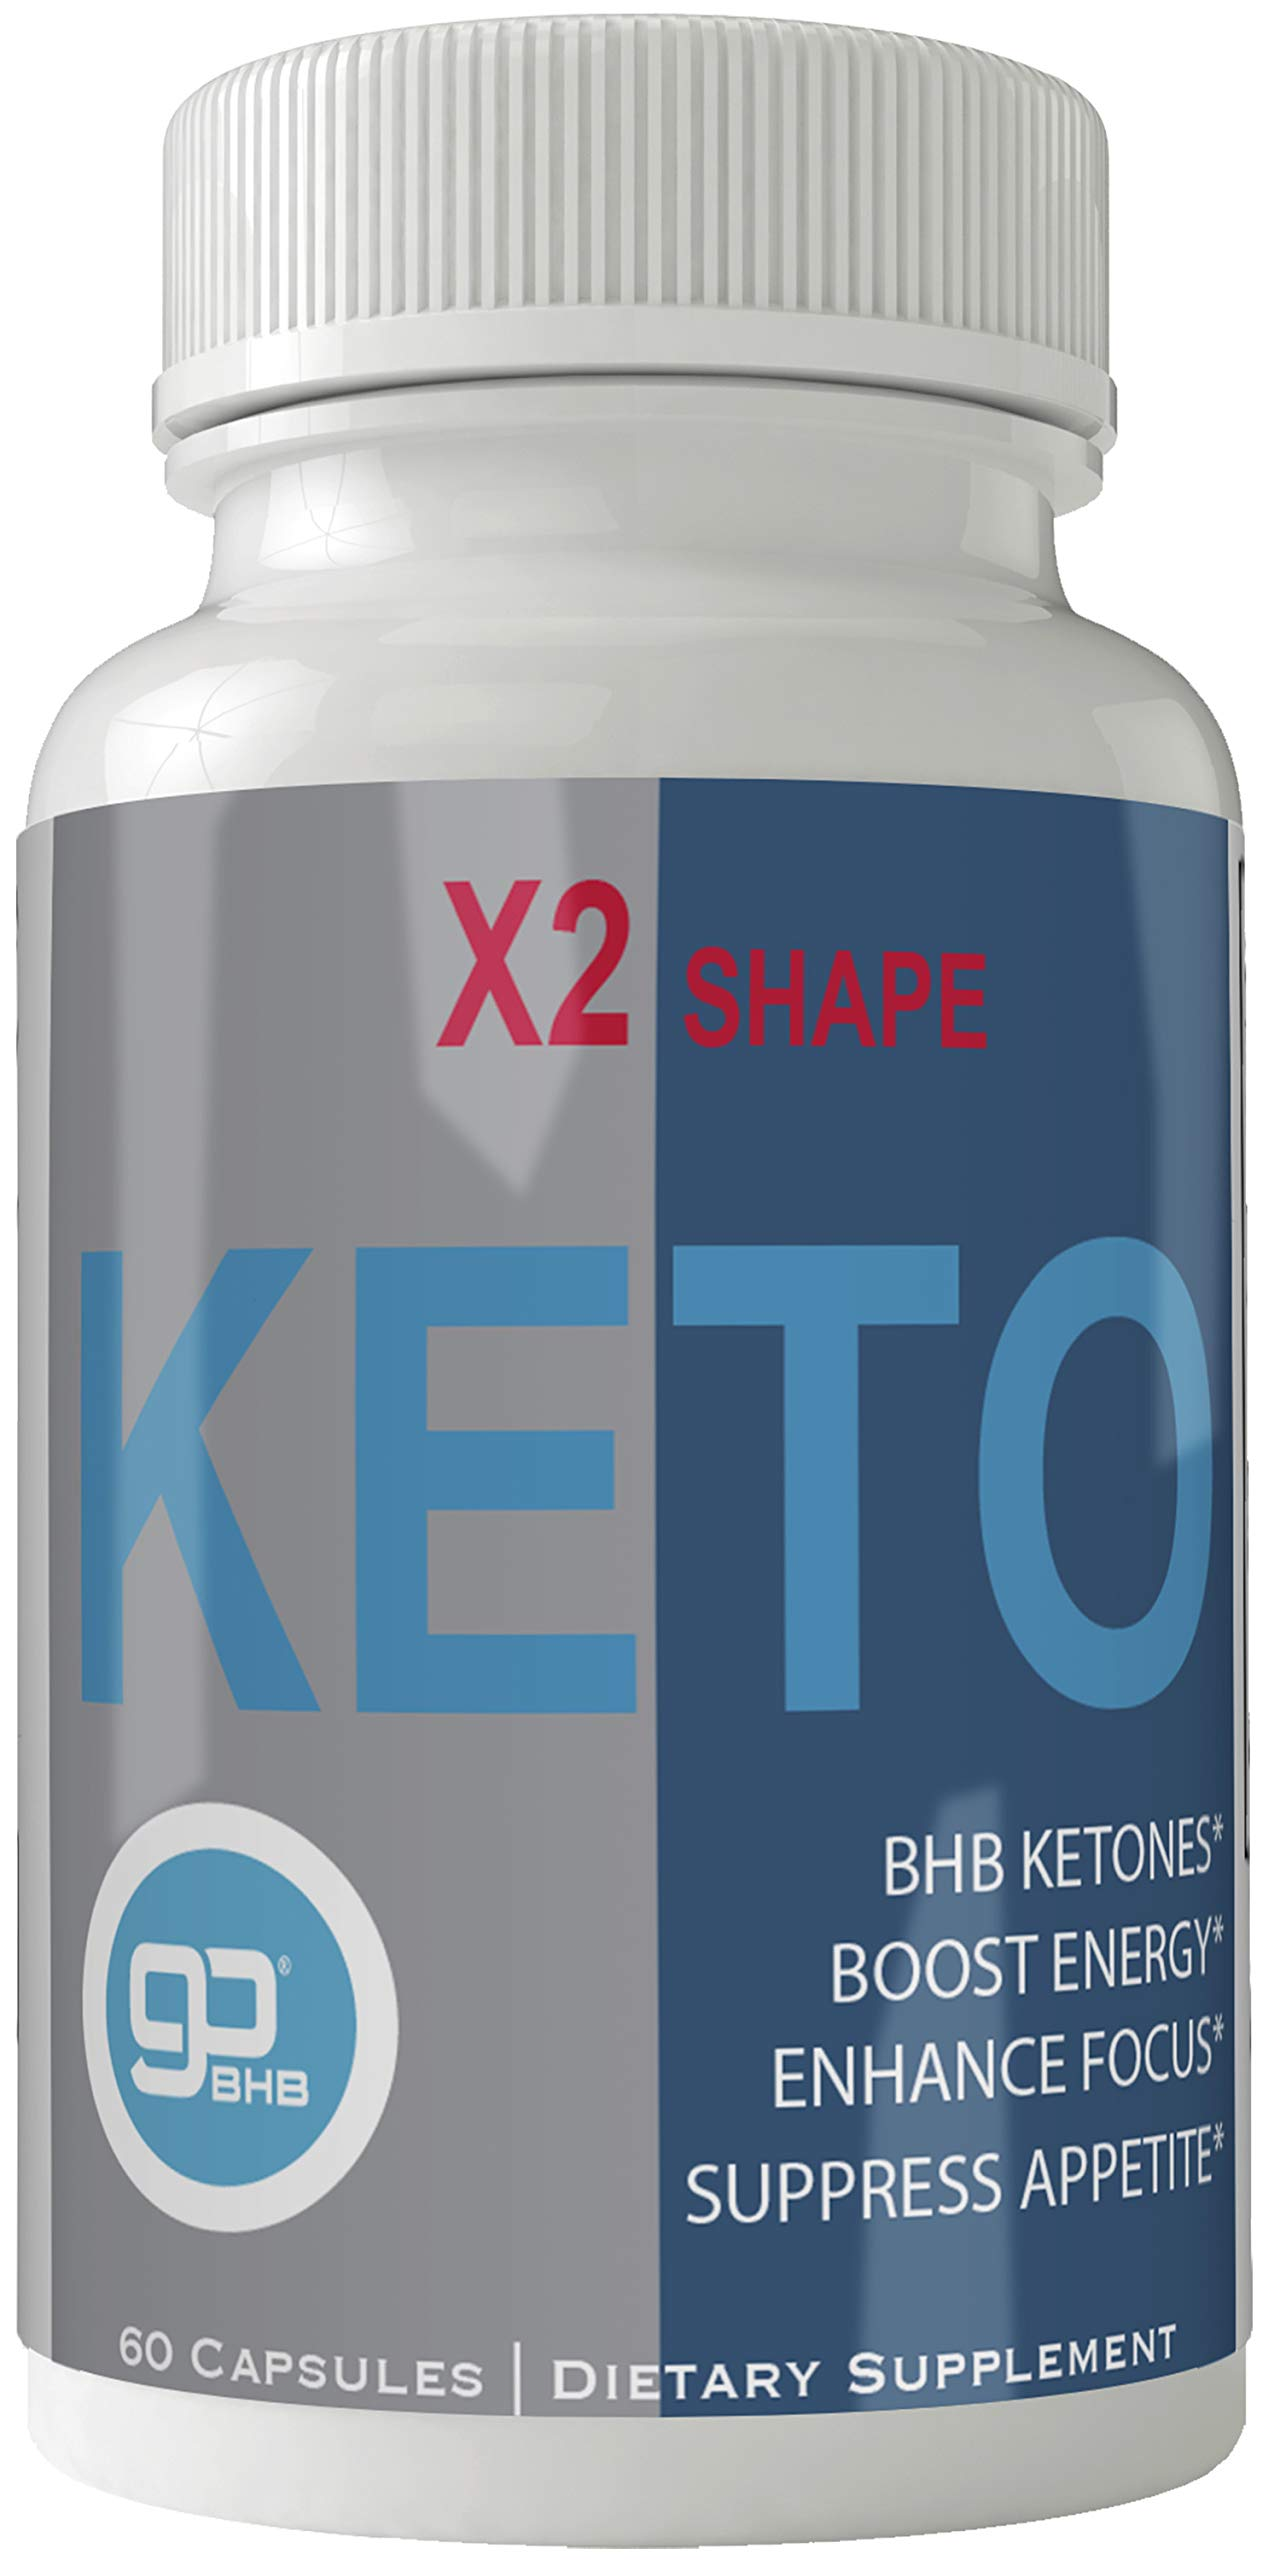 X2 Shape Keto Pills for Weight Loss, Extreme Natural Ketogenic Burn Fat Supplement, 800 mg Formula with New GO BHB Salts Formula, Advanced Appetite Suppressant Capsules